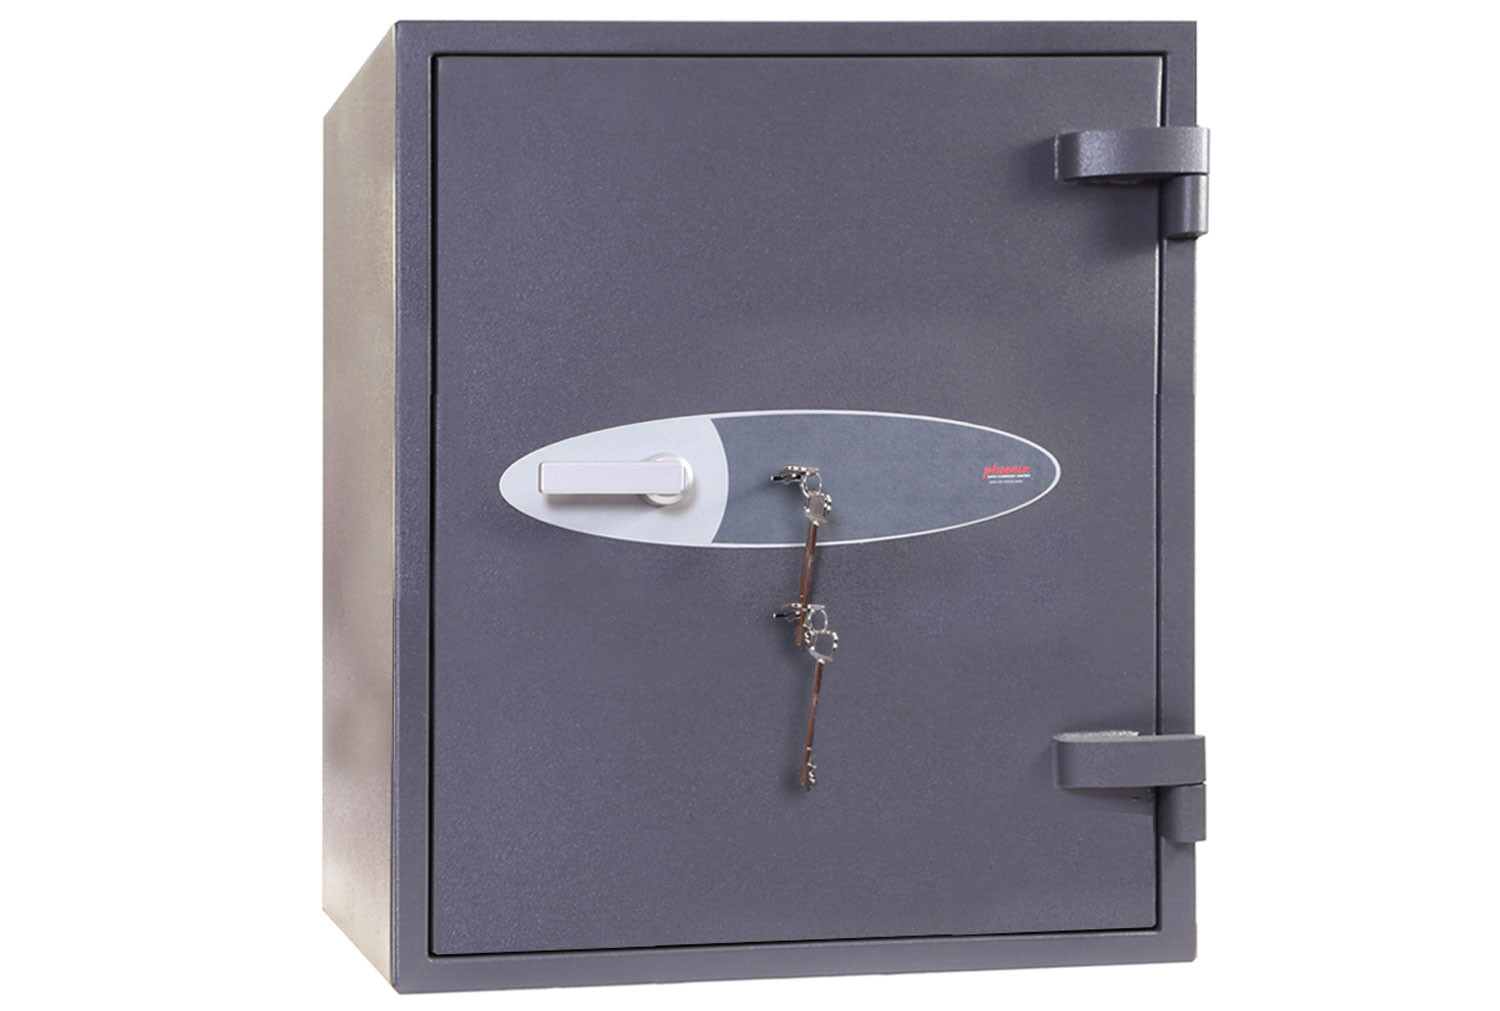 Phoenix Planet HS6072K High Security Safe With Key Lock (100ltrs)